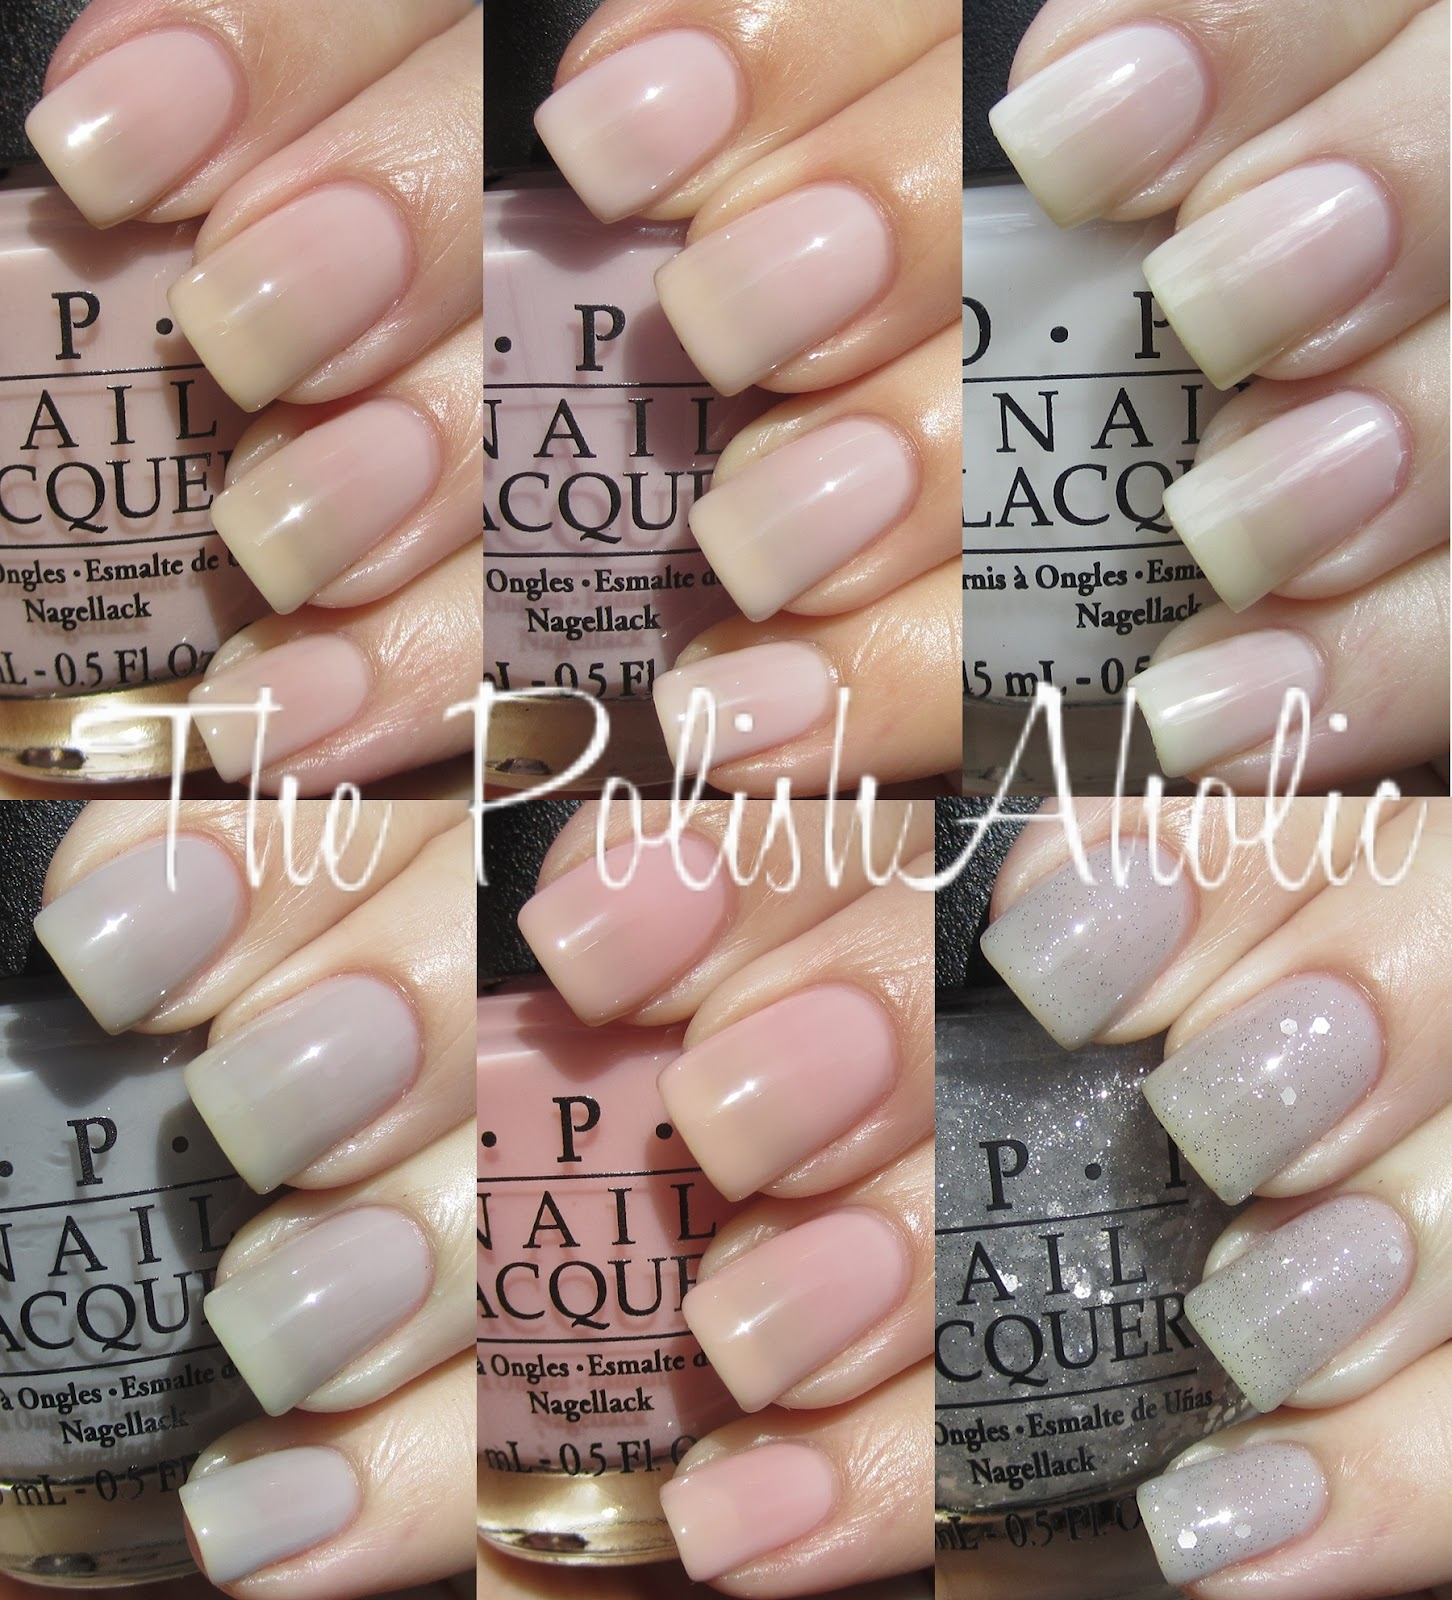 The PolishAholic: OPI NYC Ballet Soft Shades 2012 Collection Swatches!